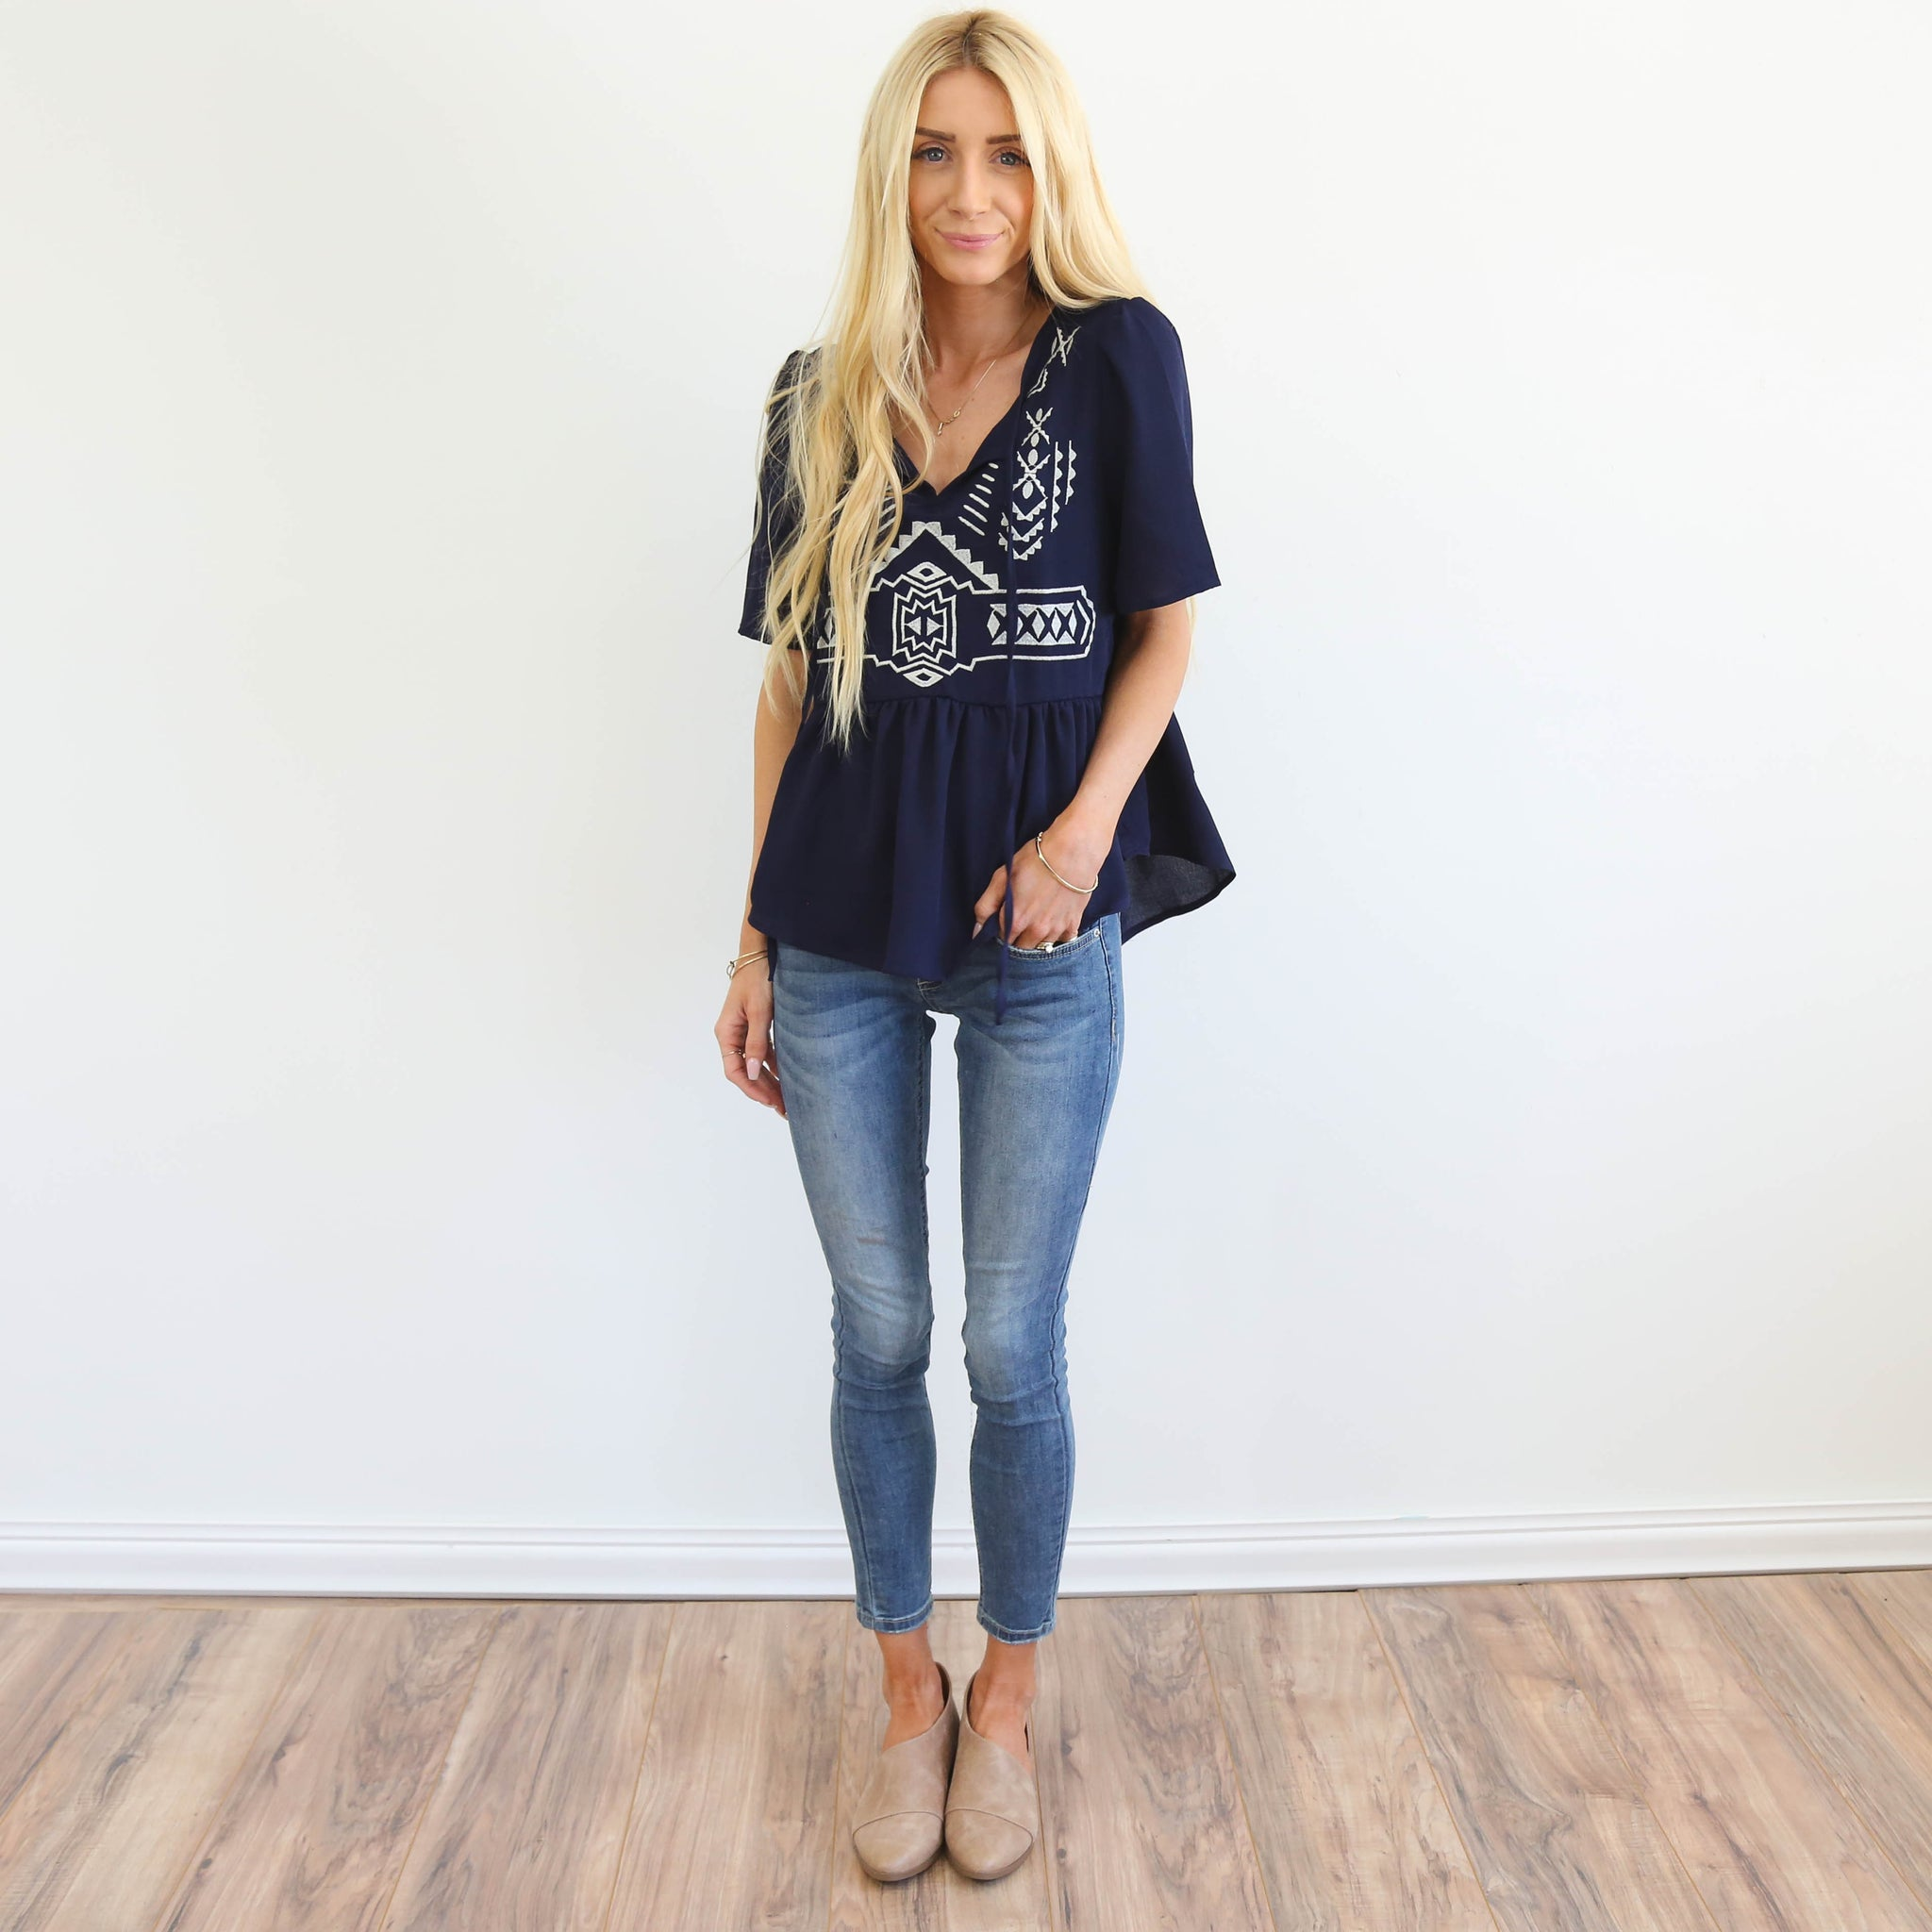 Kami Embroidered Top in Navy